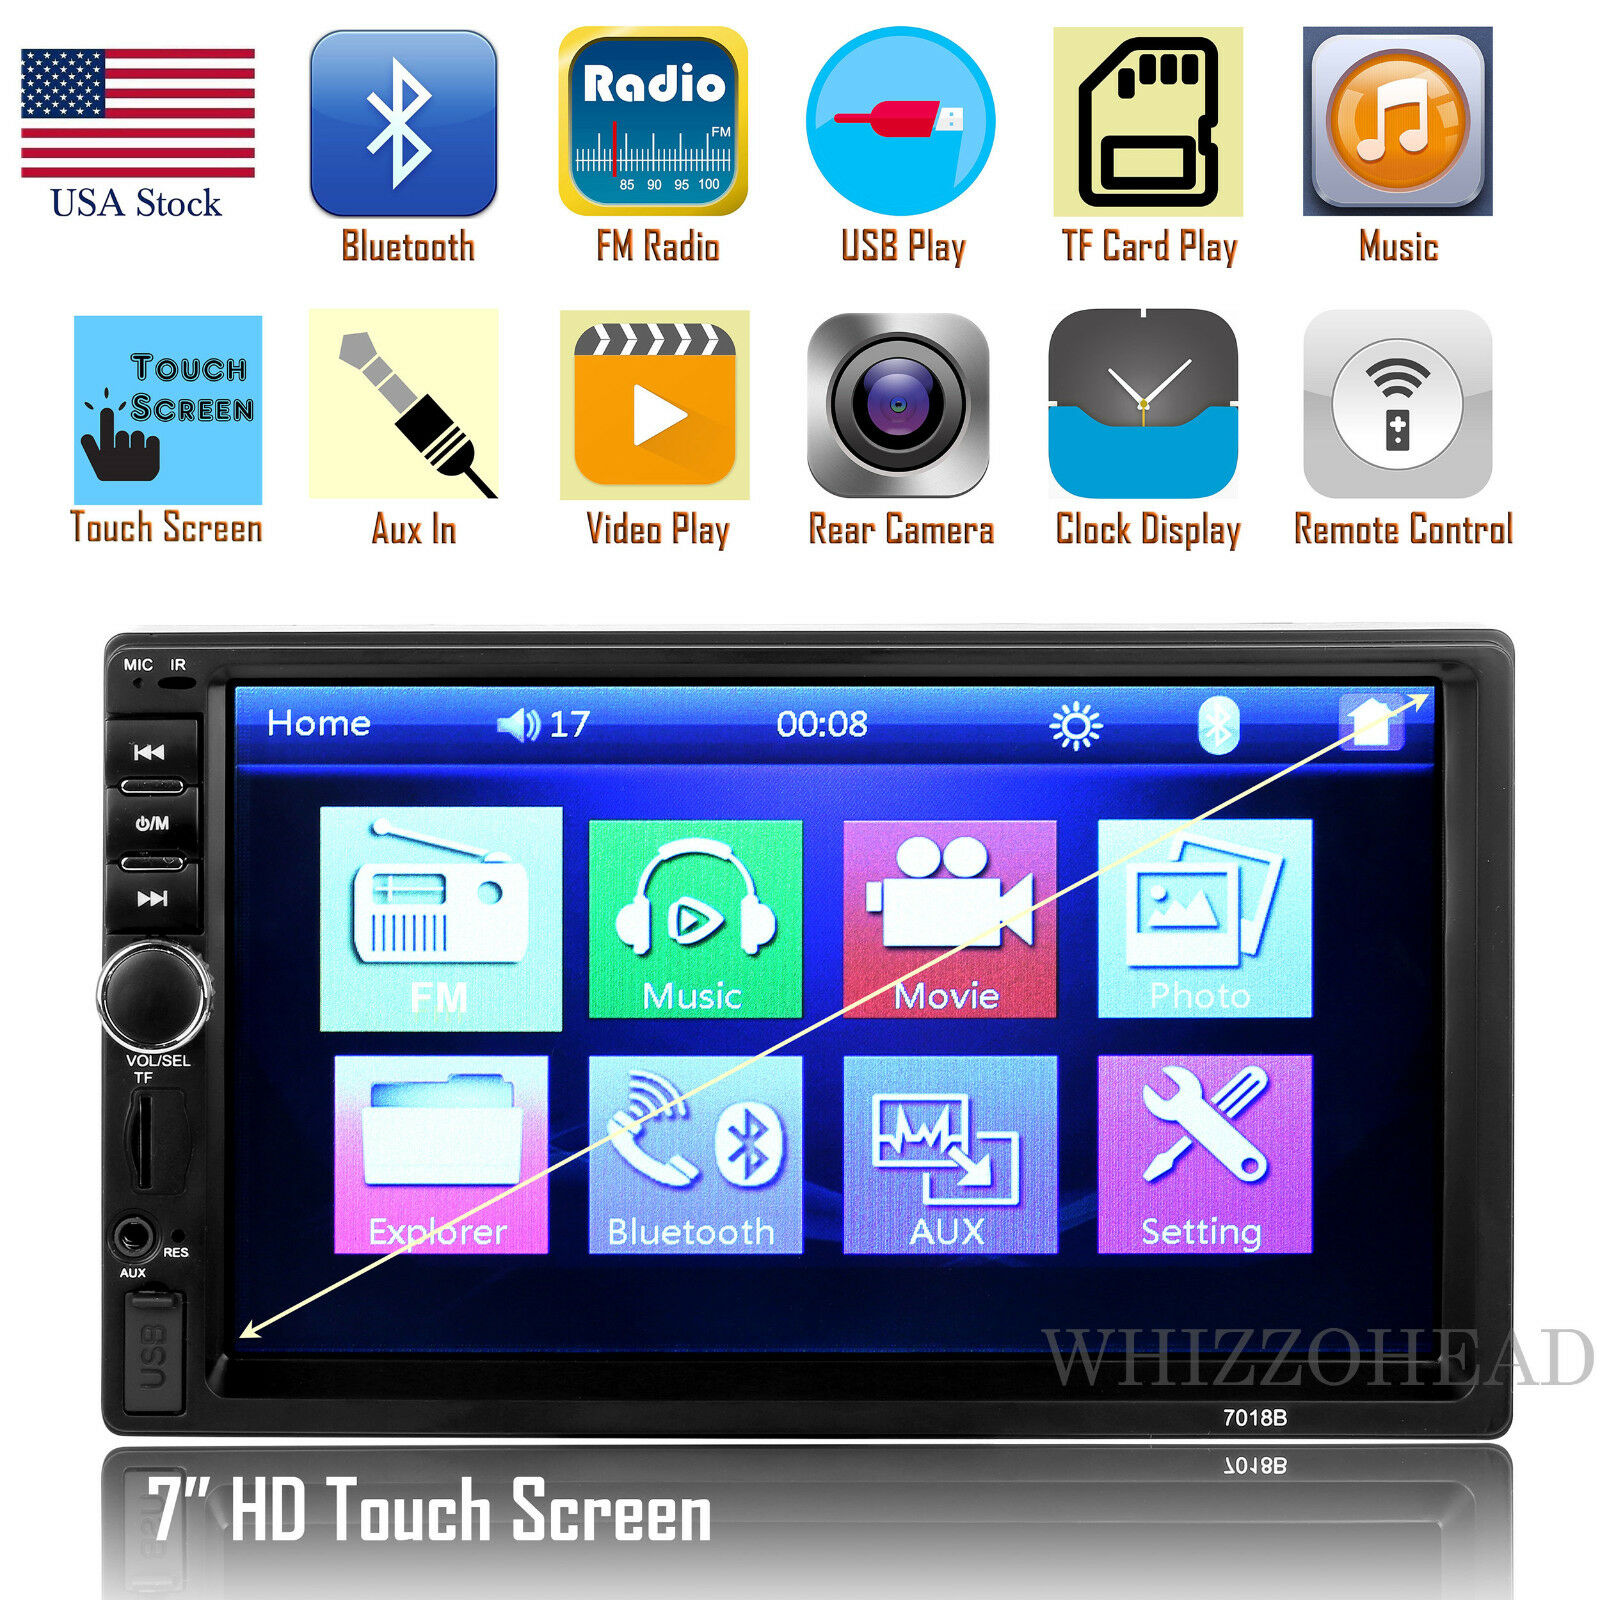 Купить Unbranded/Generic 7018B - Car Stereo Radio Bluetooth Audio Receiver Double Din 7 Touch Screen USB AUX TF